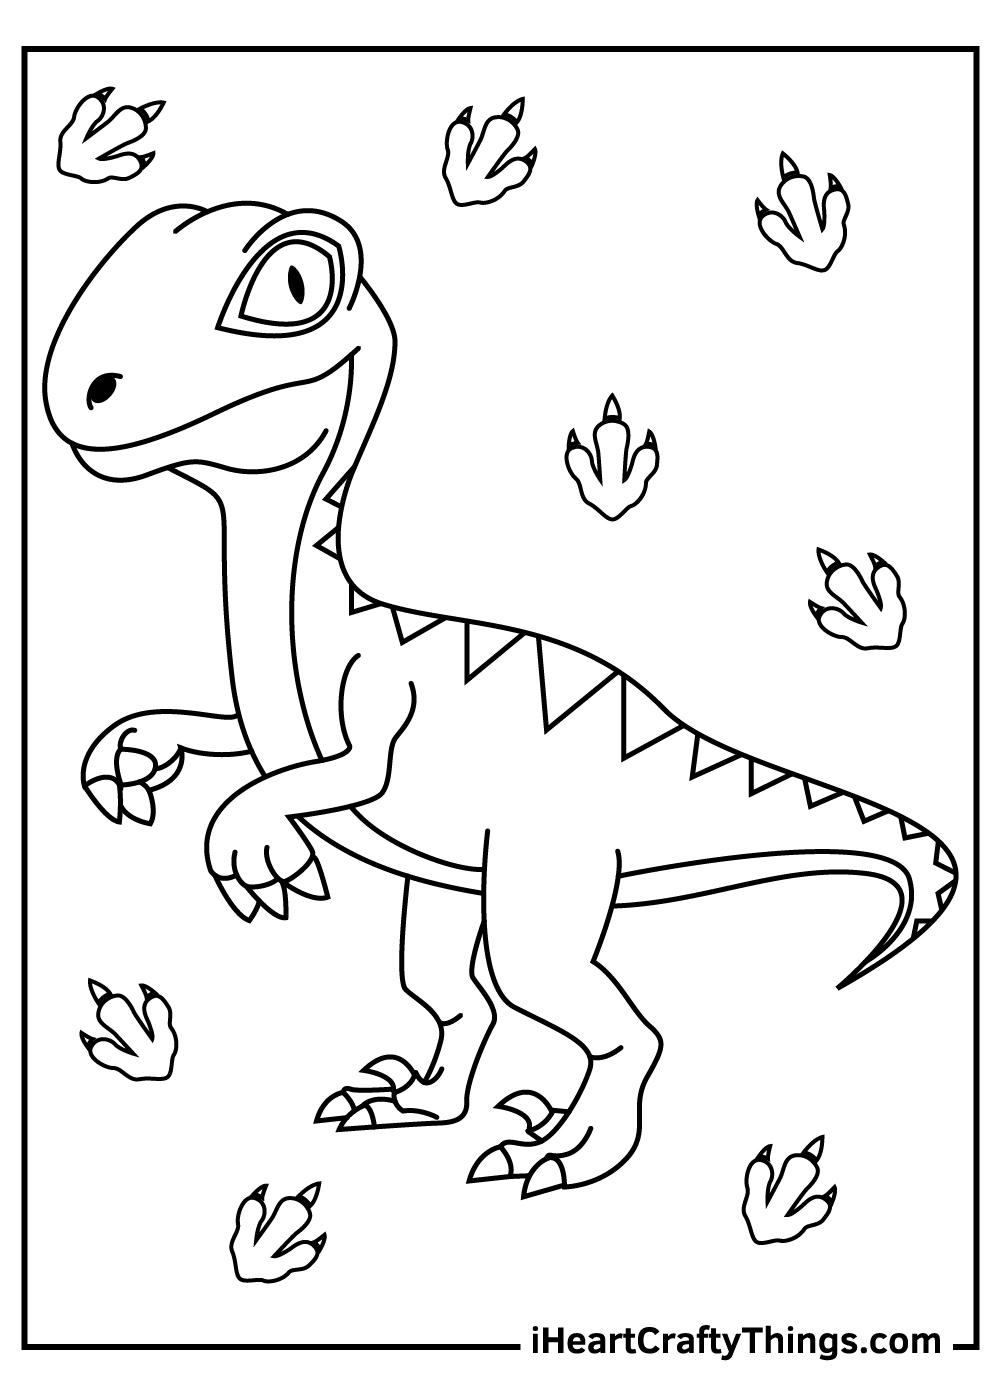 velociraptor coloring pages for kids free download